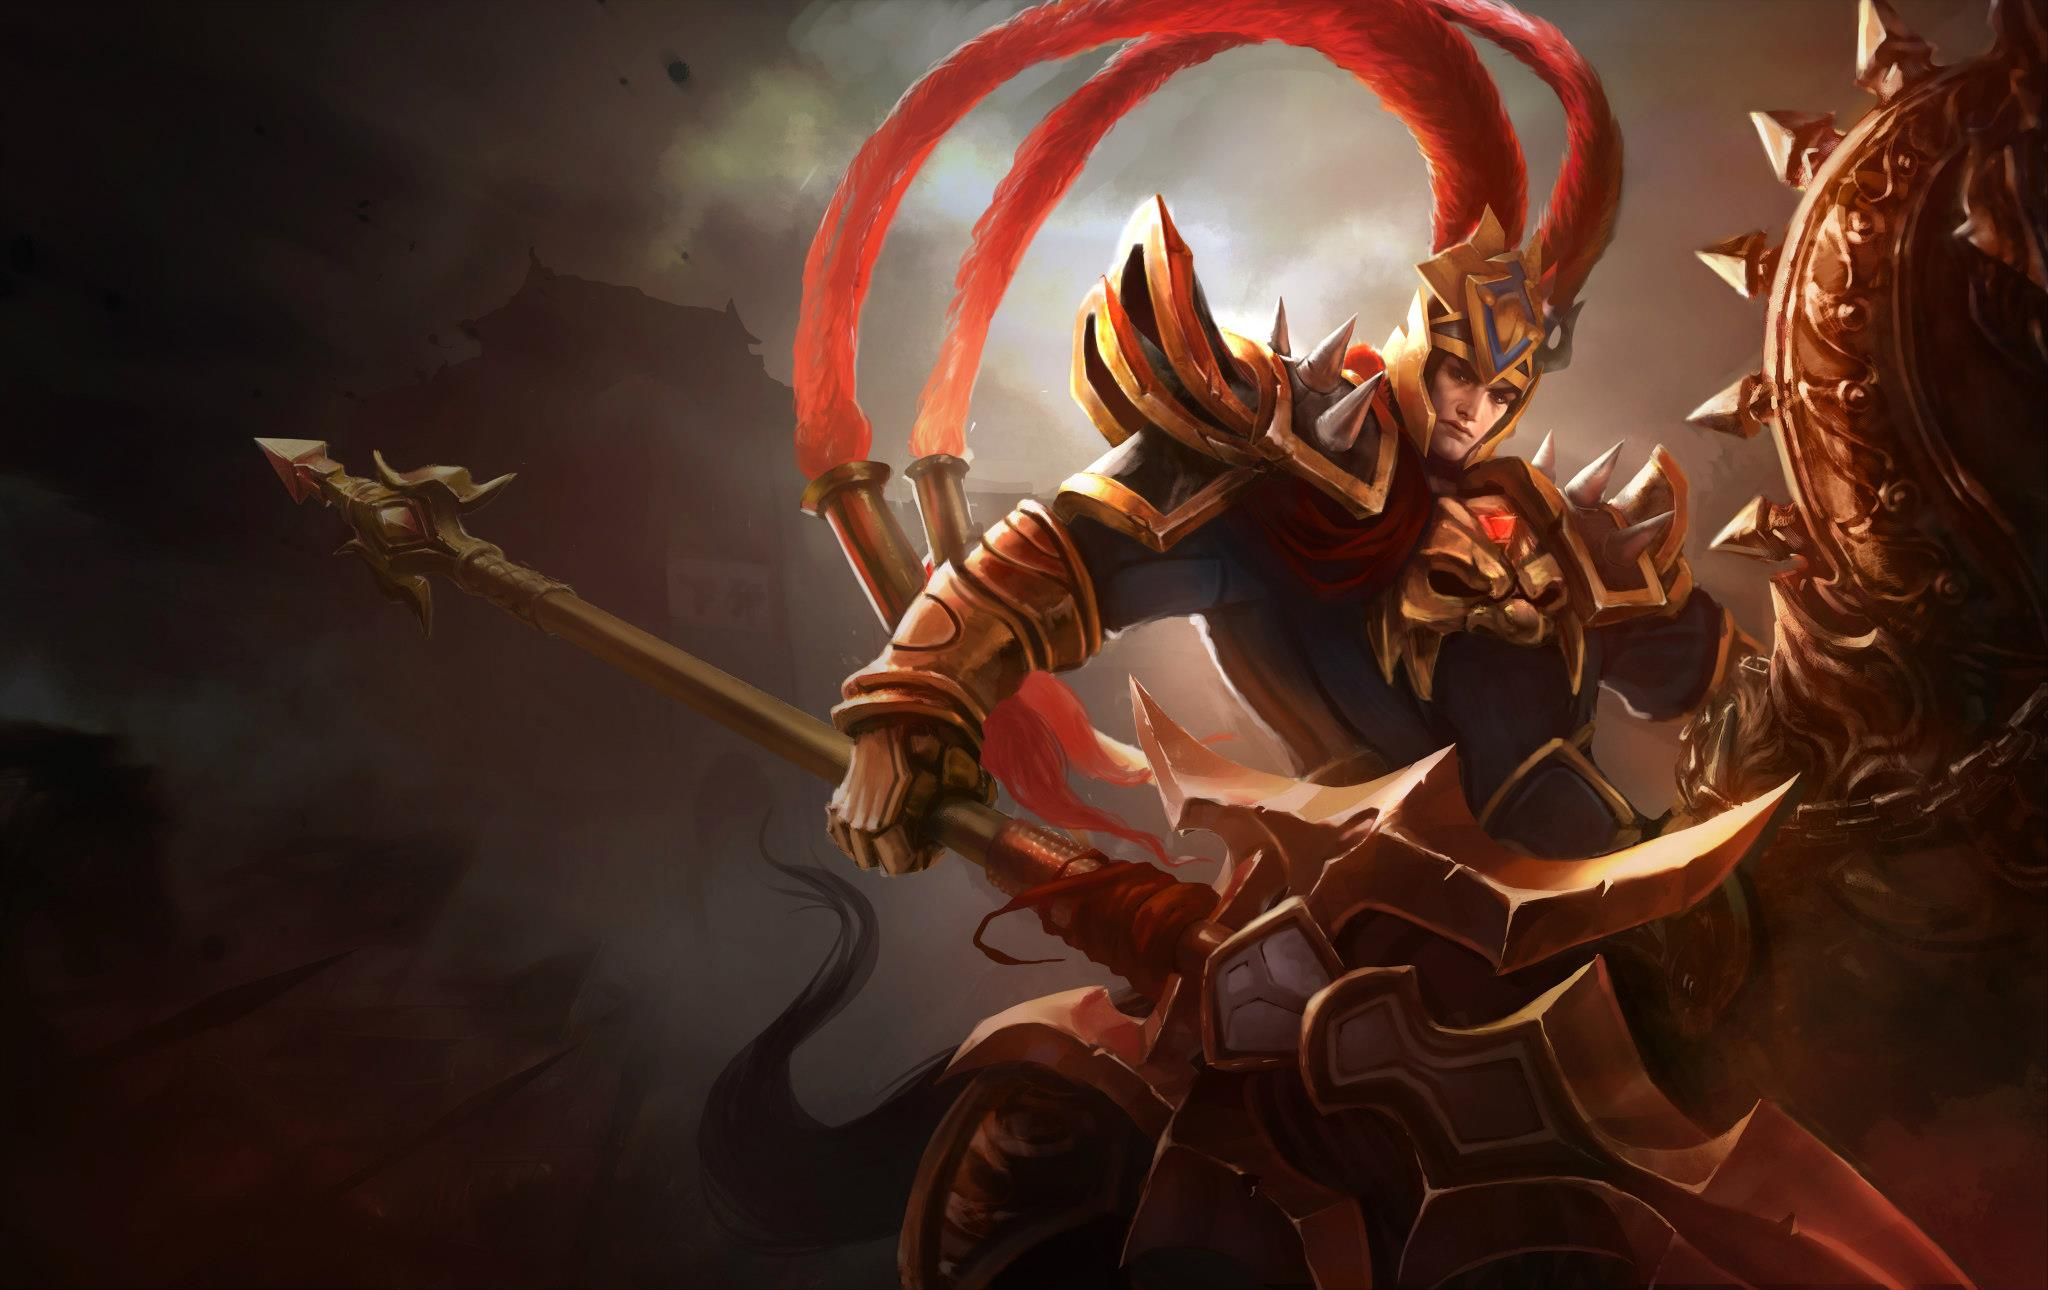 Video game league of legends warrior jarvan iv league of